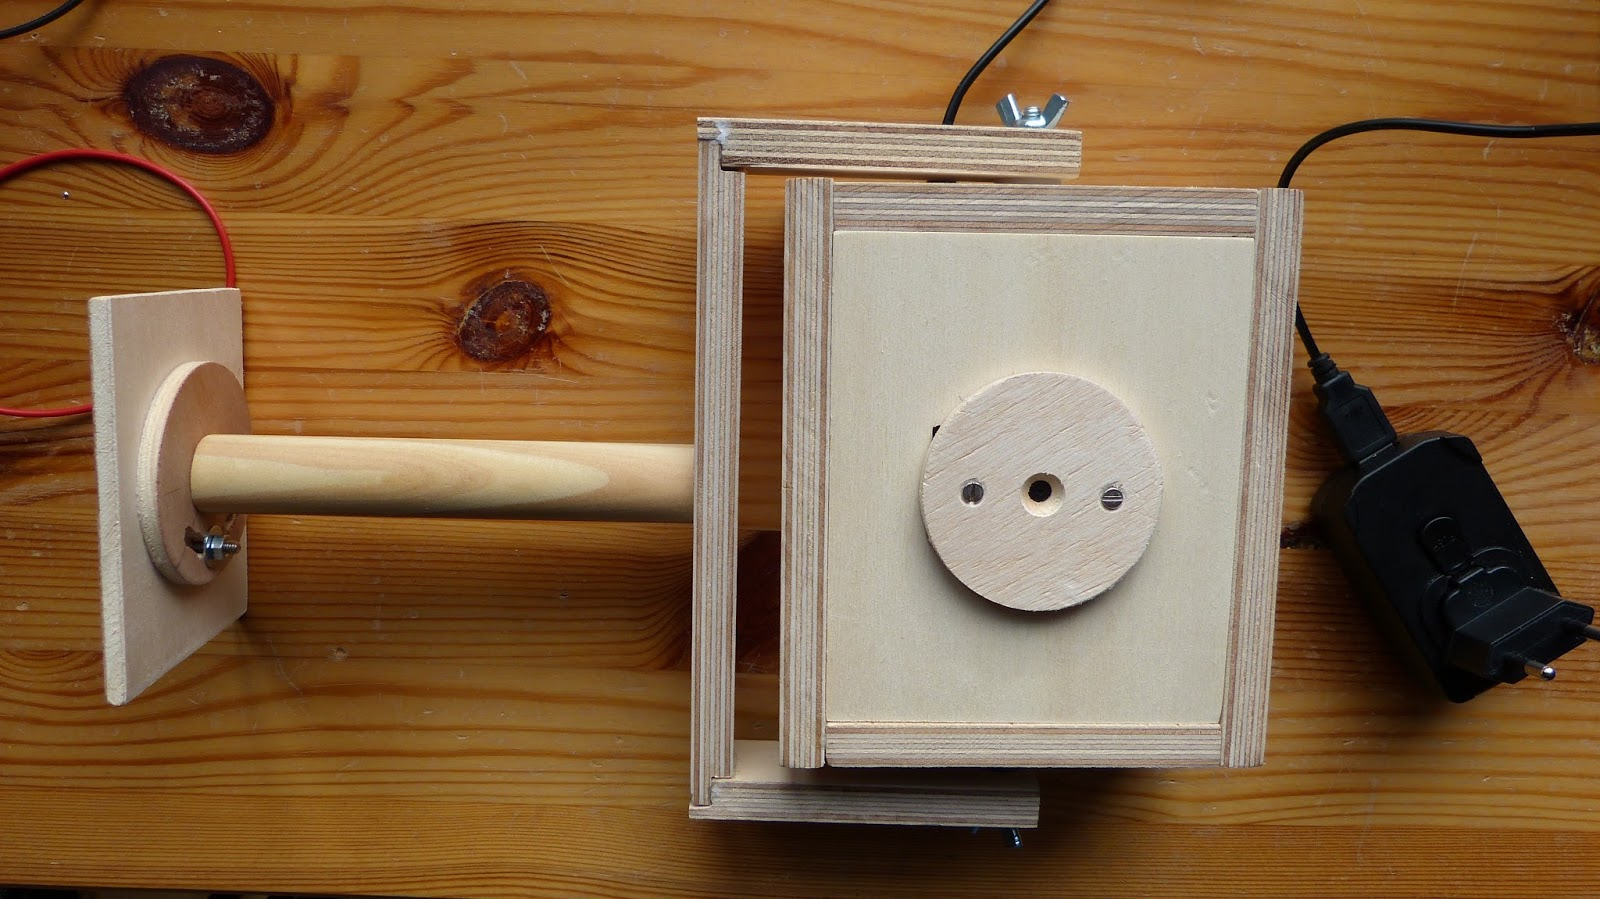 plywood housing for the homemade security camera